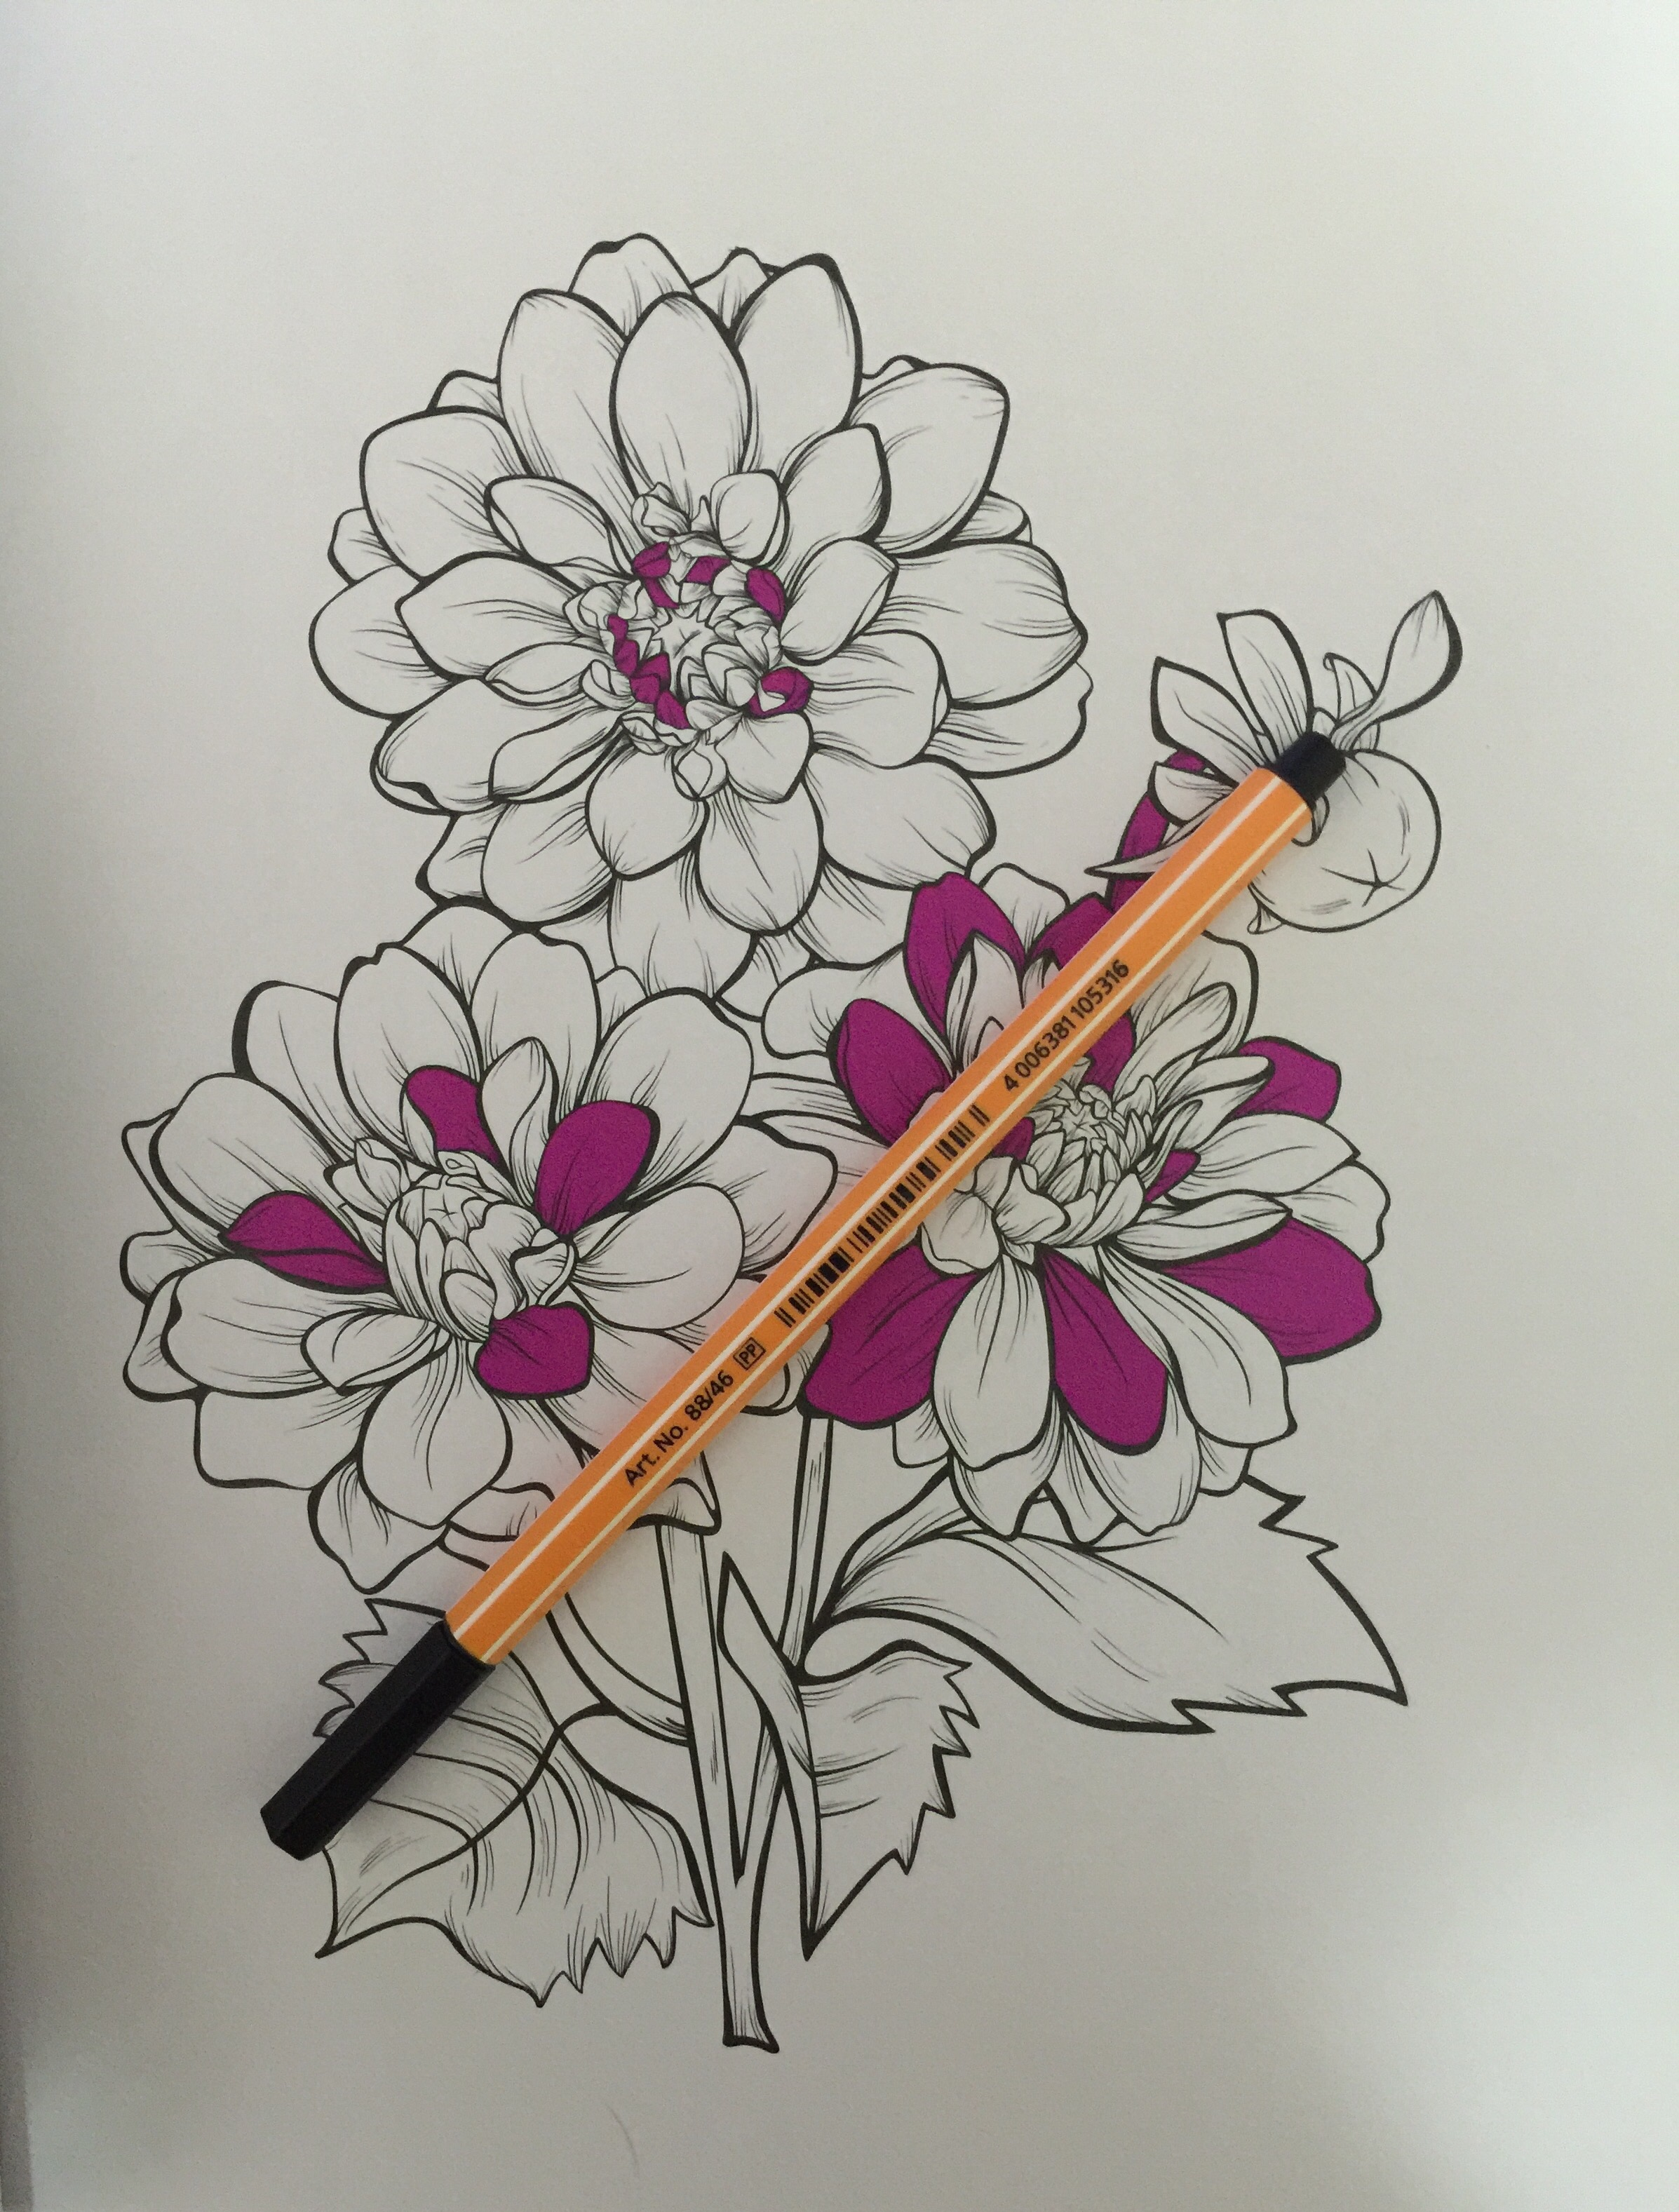 coloring reviews adult flowers completed garden color coloring colour pencils art review therapy anti stress